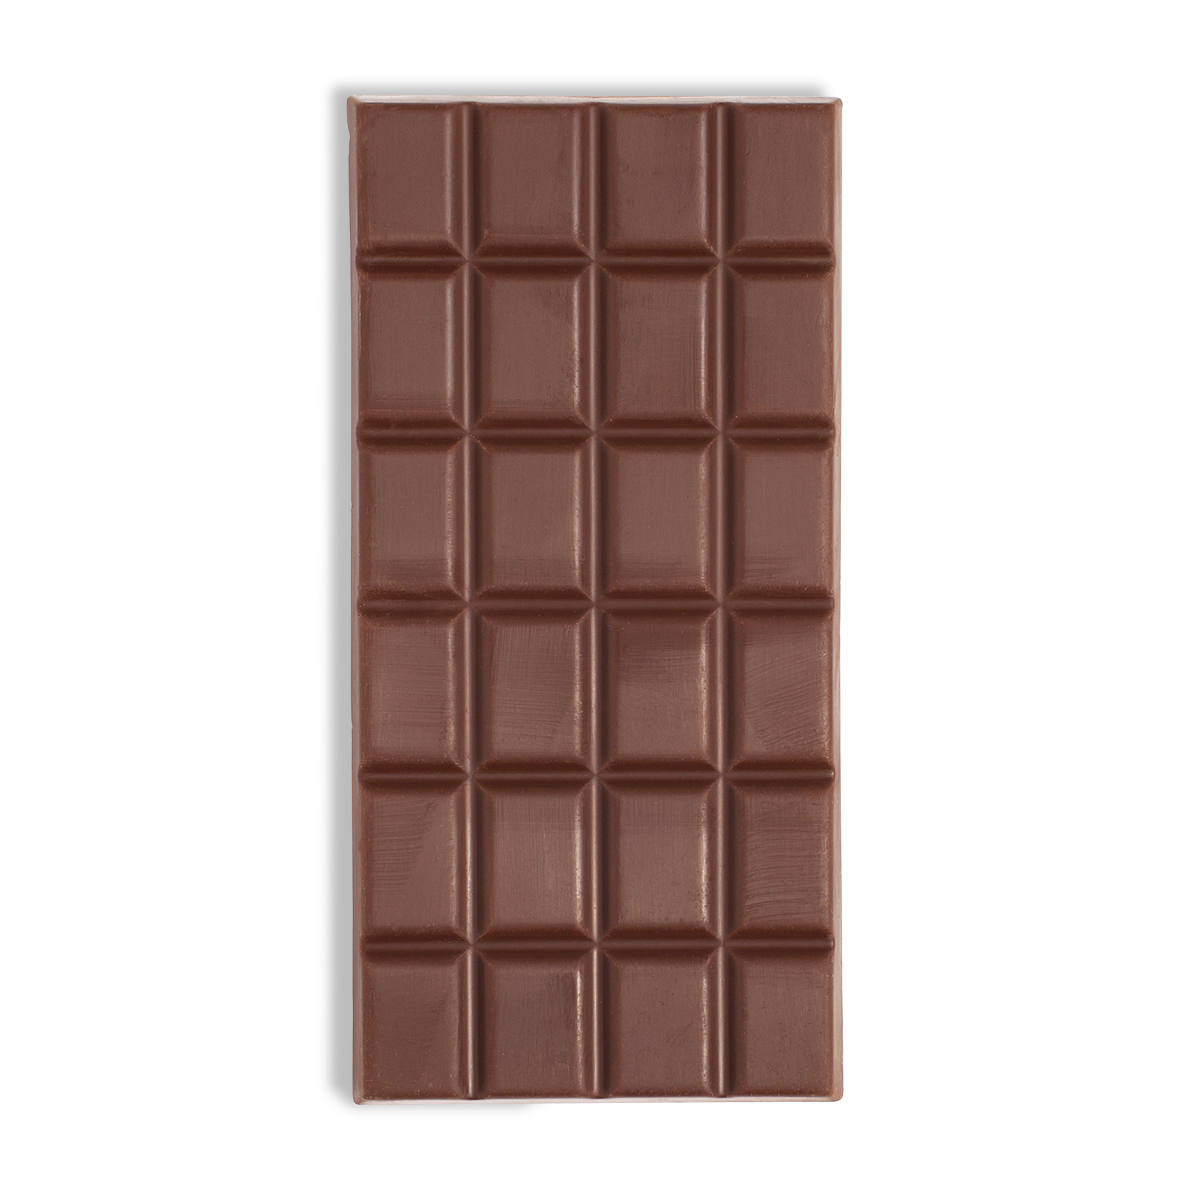 Vice Collection: Bourbon & Toffee Milk Chocolate Bar